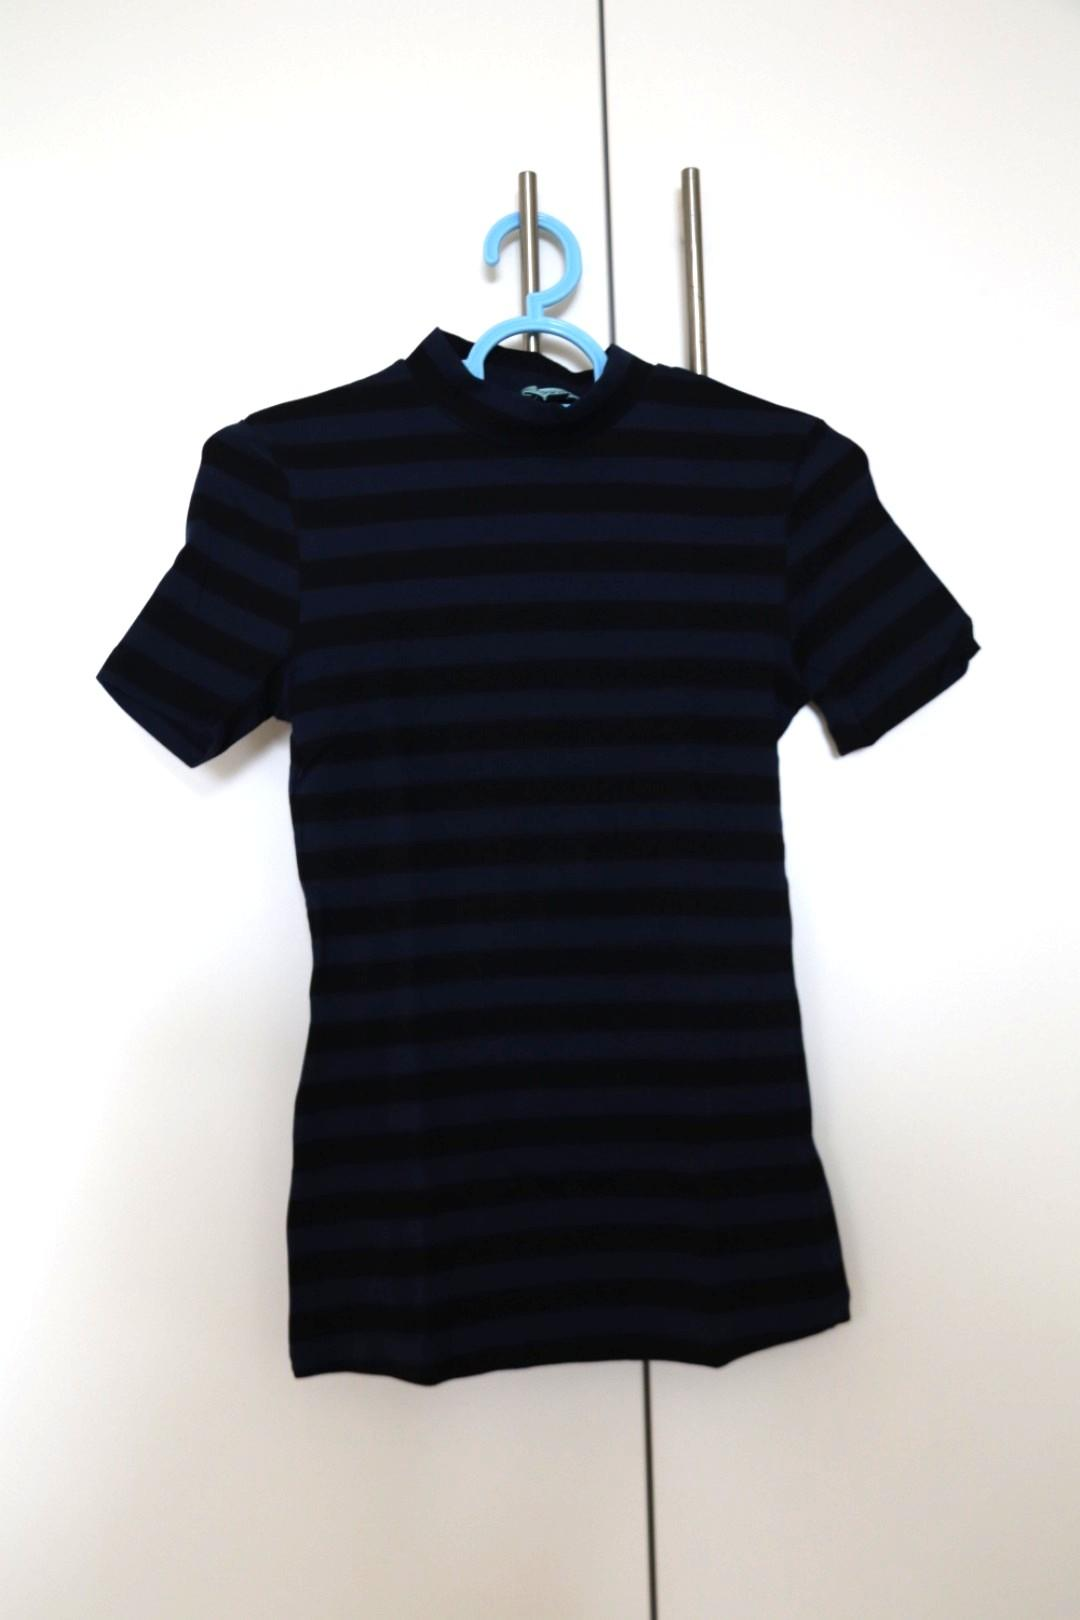 Kookai Mock Neck Top in Black and Blue Stripes | New without Tag